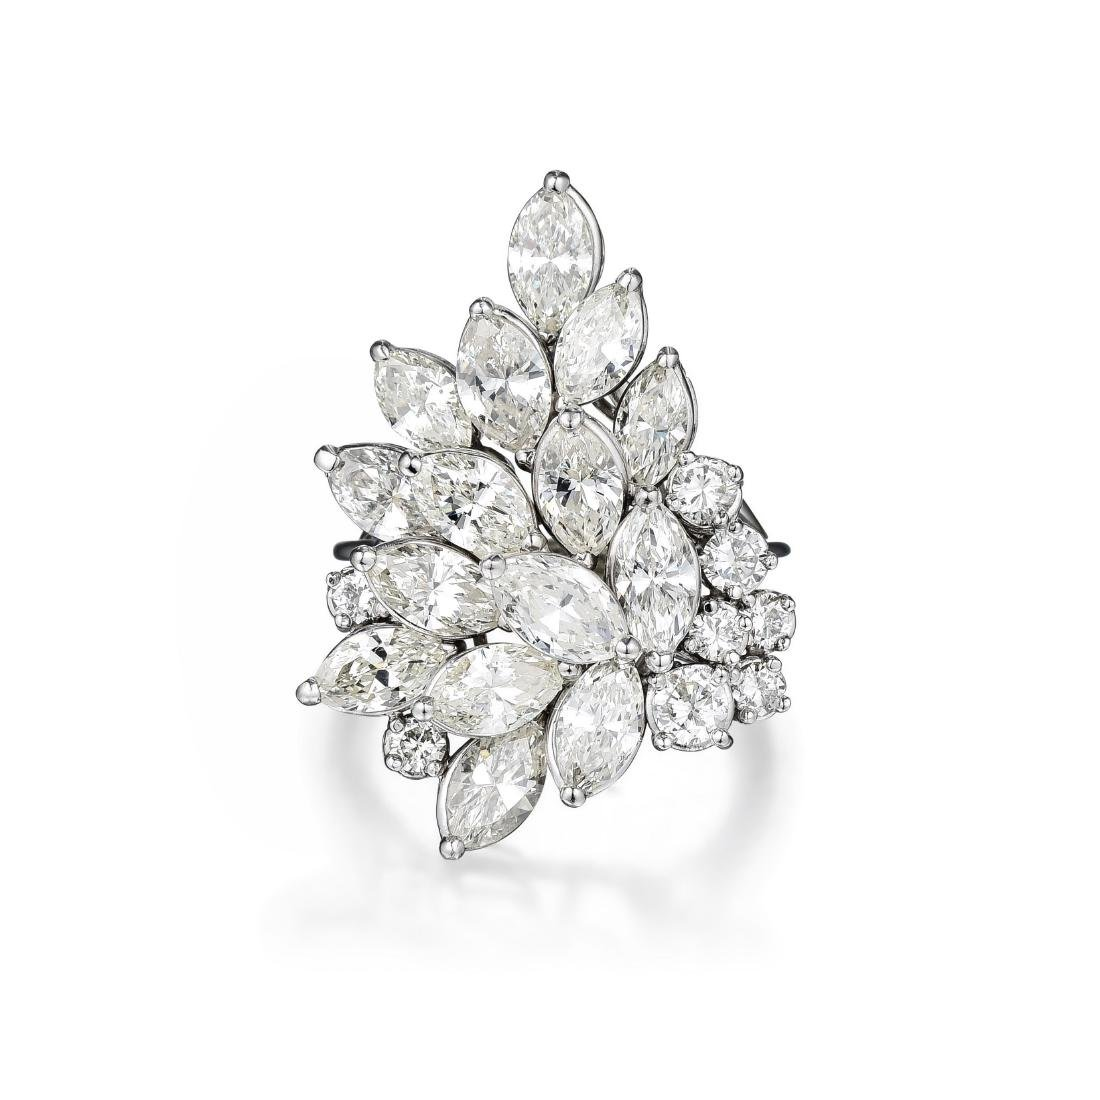 A Cluster Diamond Ring